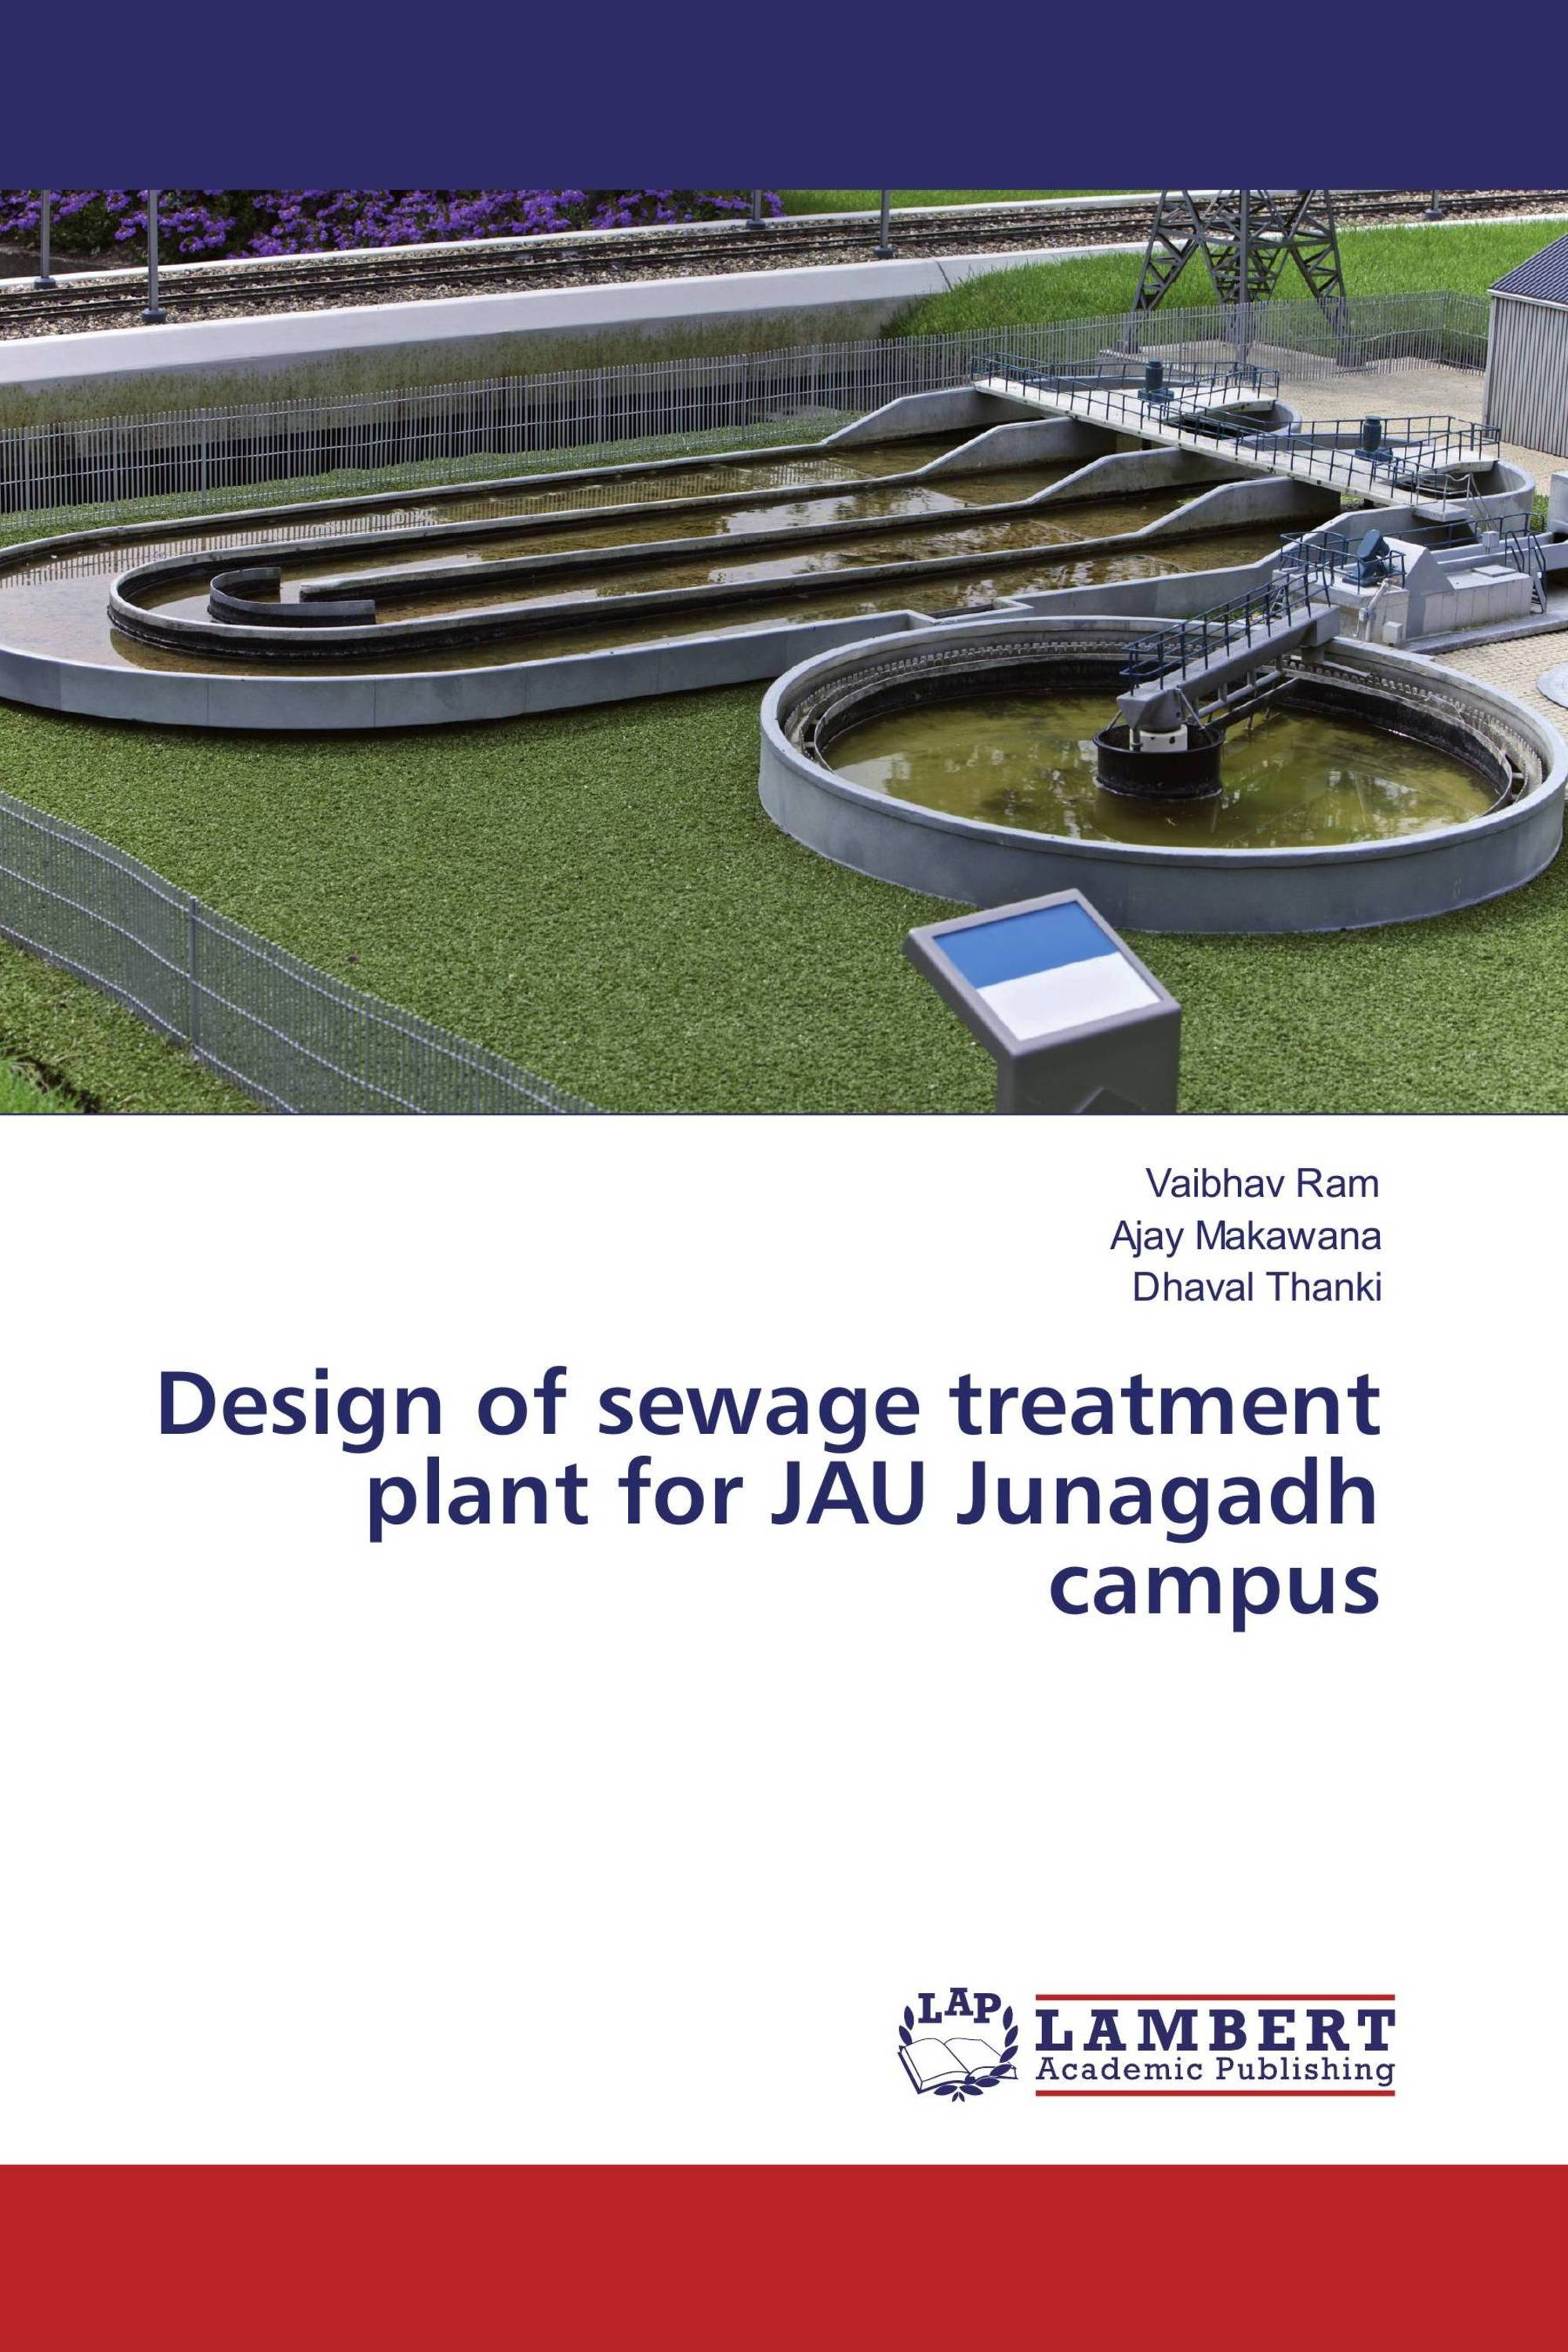 sewerage design Seq water supply & sewerage design & construction code in july 2013 a consolidated set of design and construction standards came into effect across south east queensland.